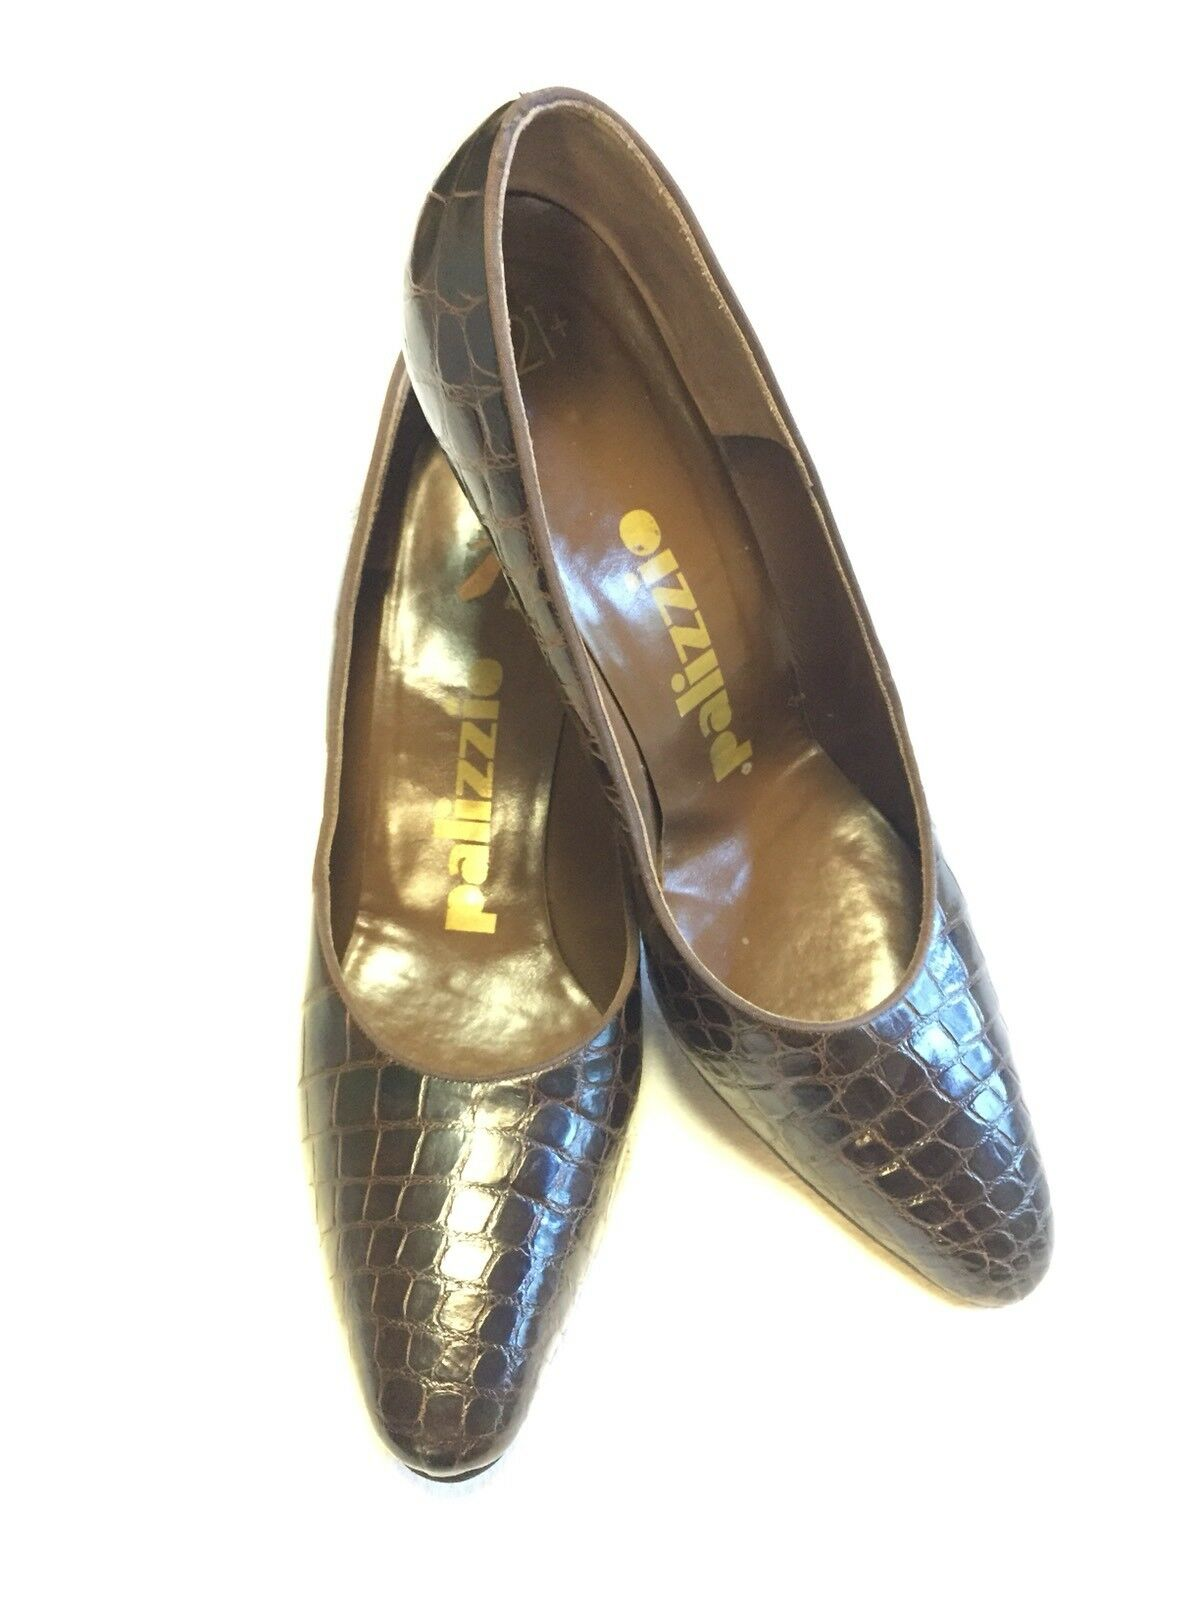 Vintage Genuine Alligator 1980's Palizzio Chocolate Marroneee Wouomo Pumps Dimensione 8